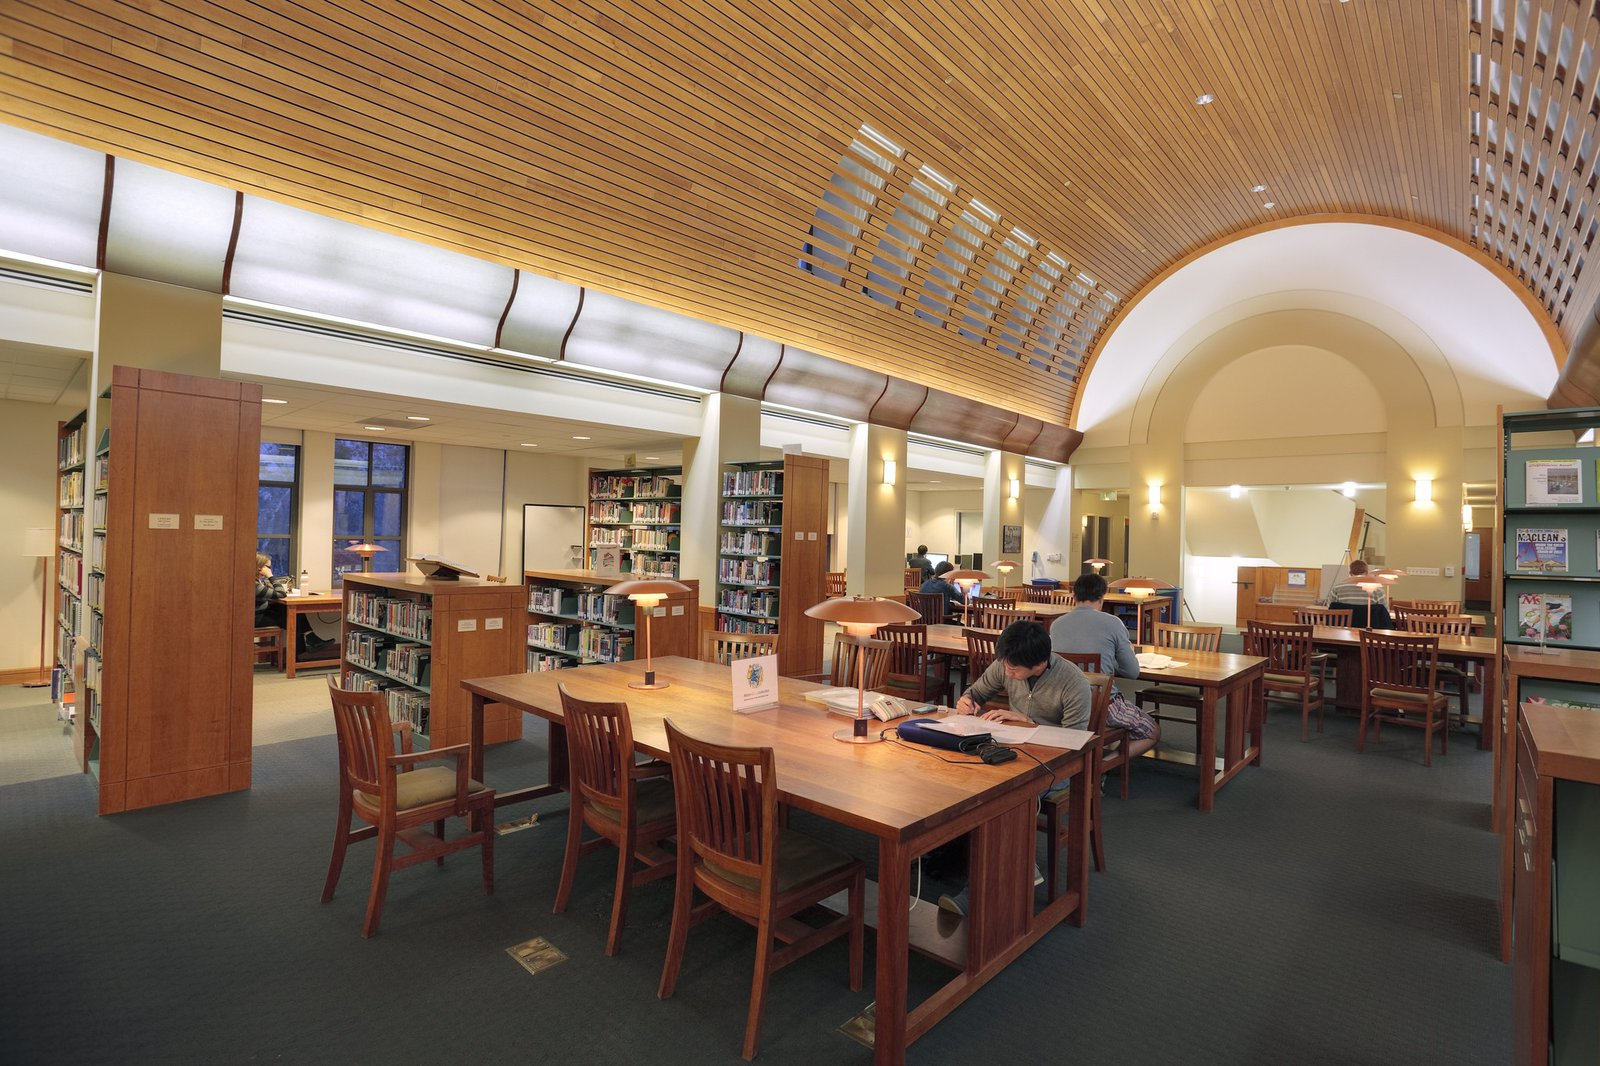 Library in the Fairchild building